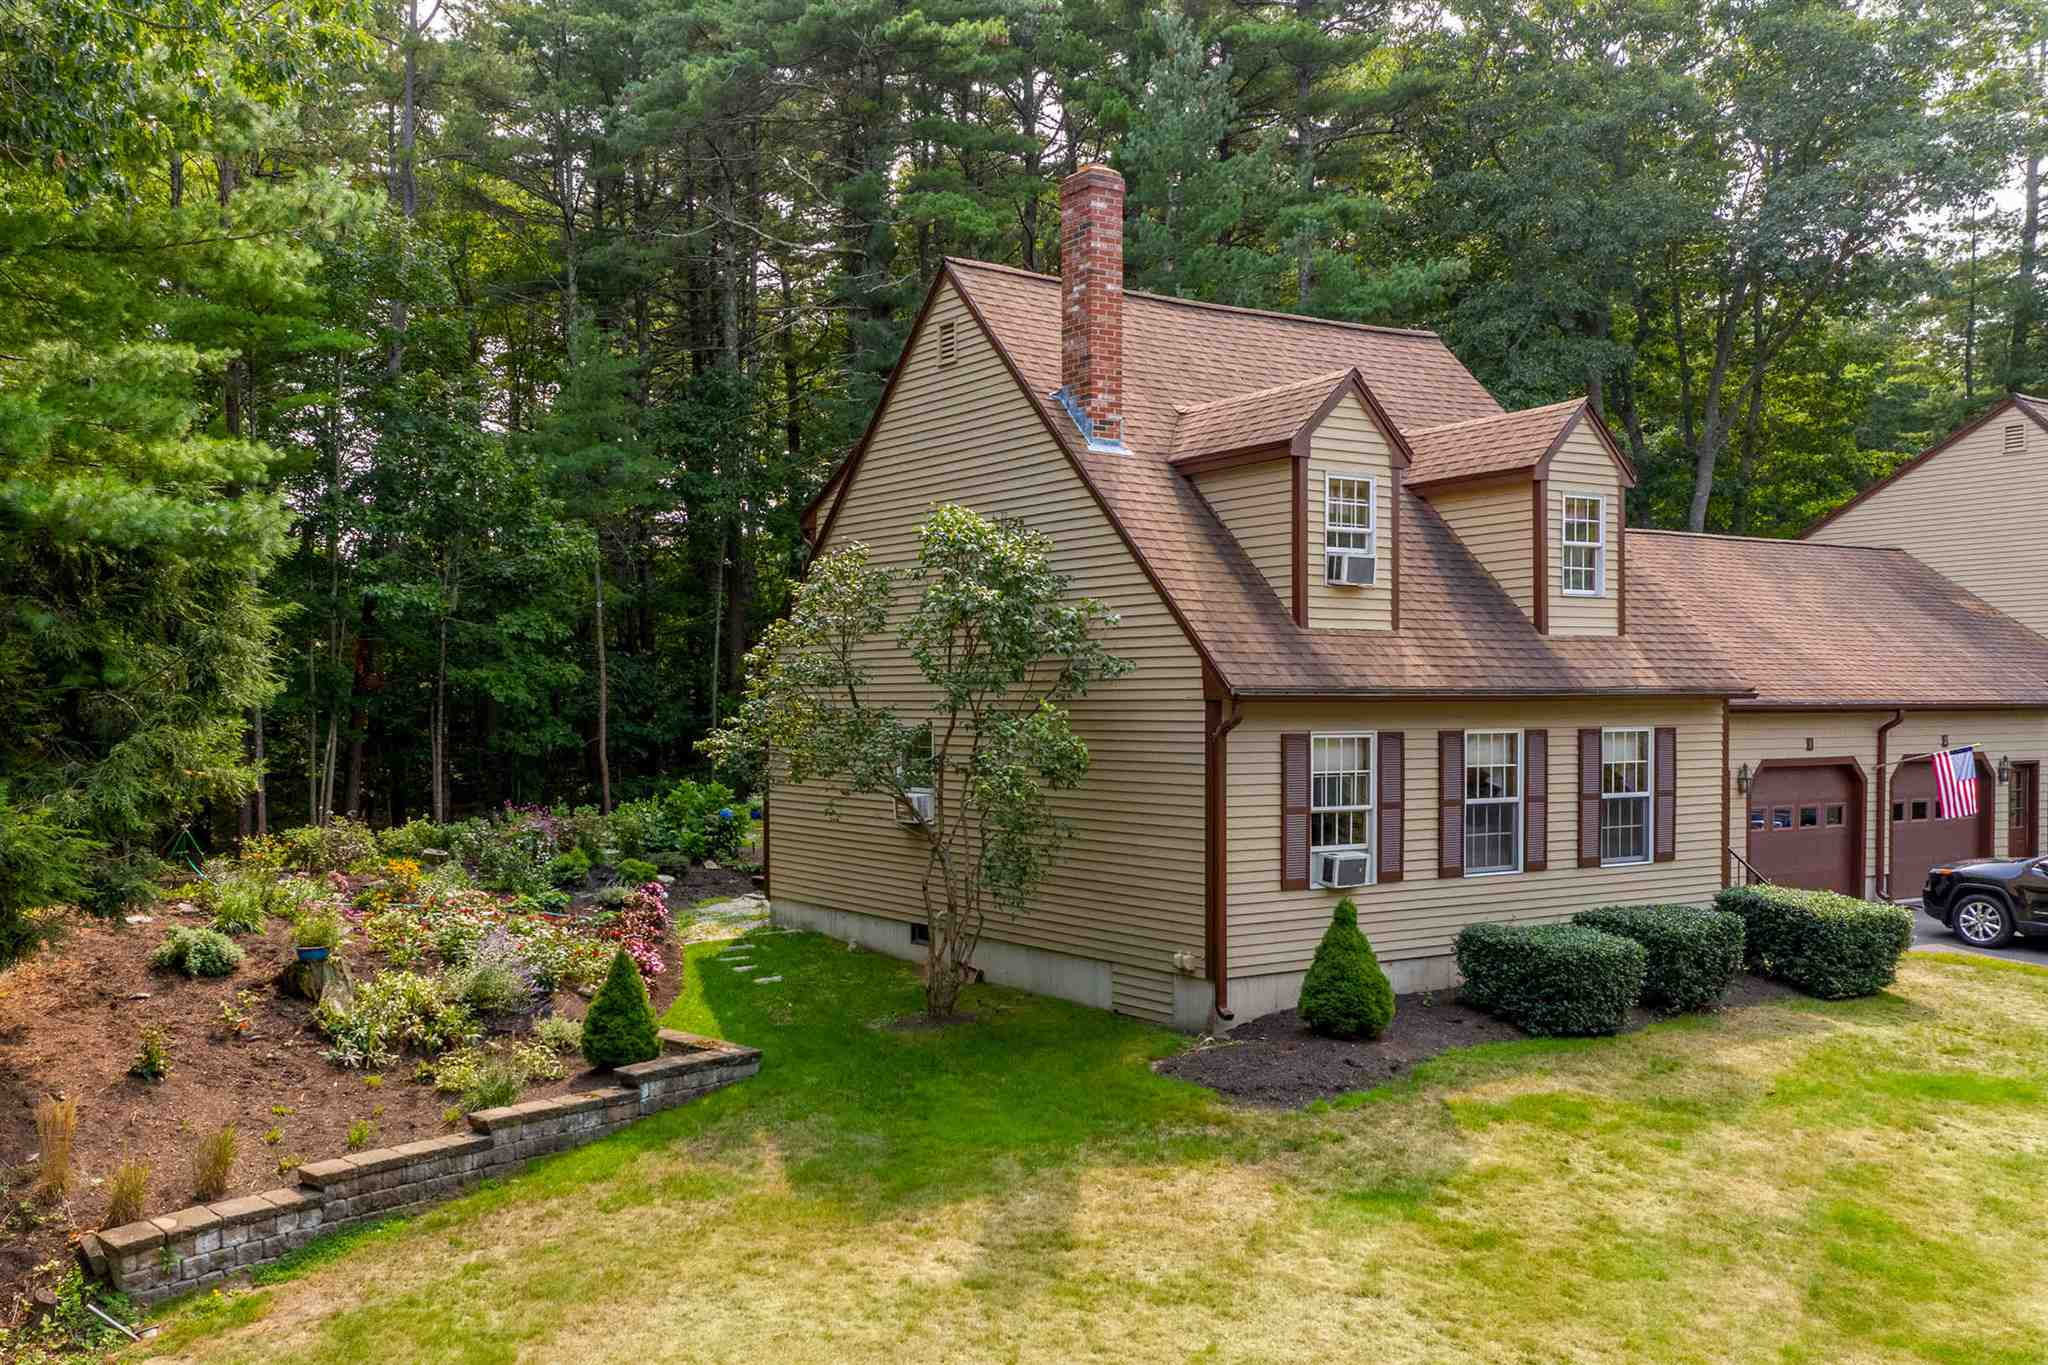 Ogunquit Homes for Sale | Tate & Foss Sotheby's ...